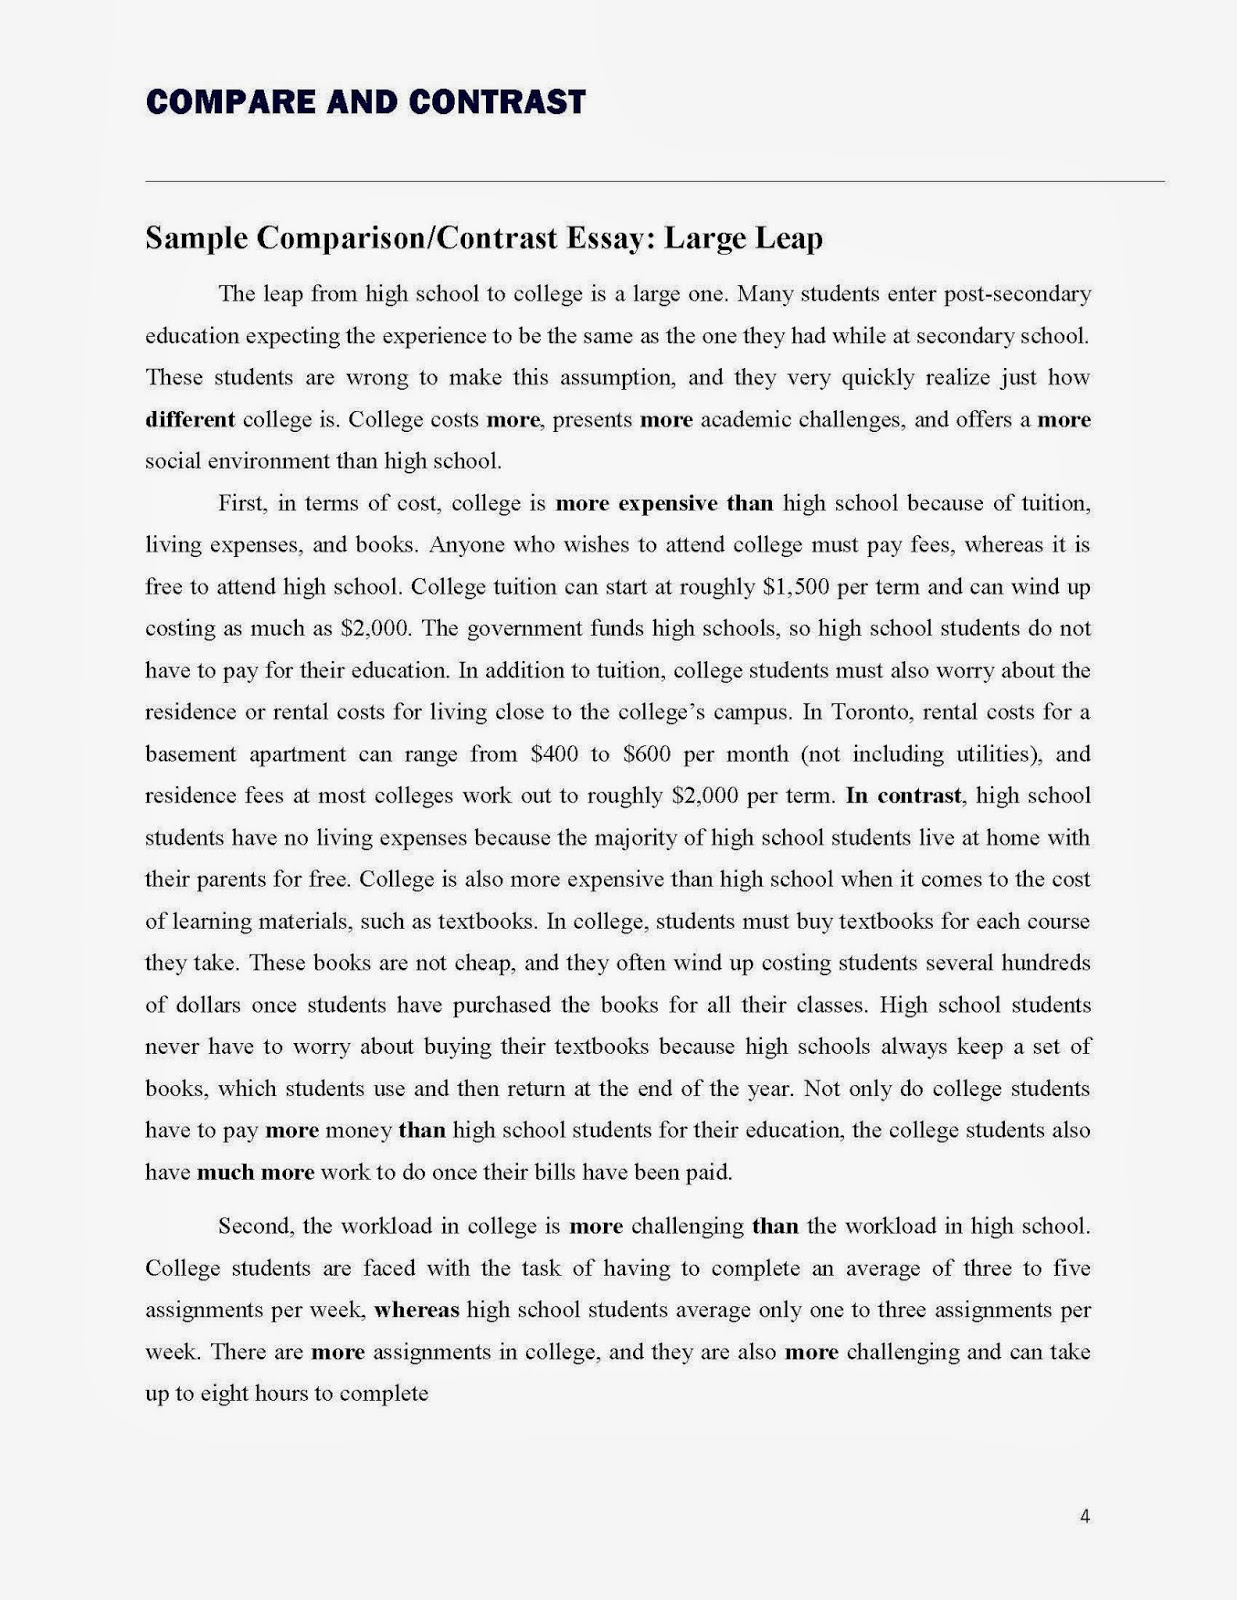 compare and contrast websites essay Compare and contrast essay for a compare and contrast essay, the writer looks at two things and the ways in which they are similar and different thesis a strong thesis statement for a compare and contrast essay names the things that are being compared and contrasted and the aspects of those things that are being compared and contrasted.